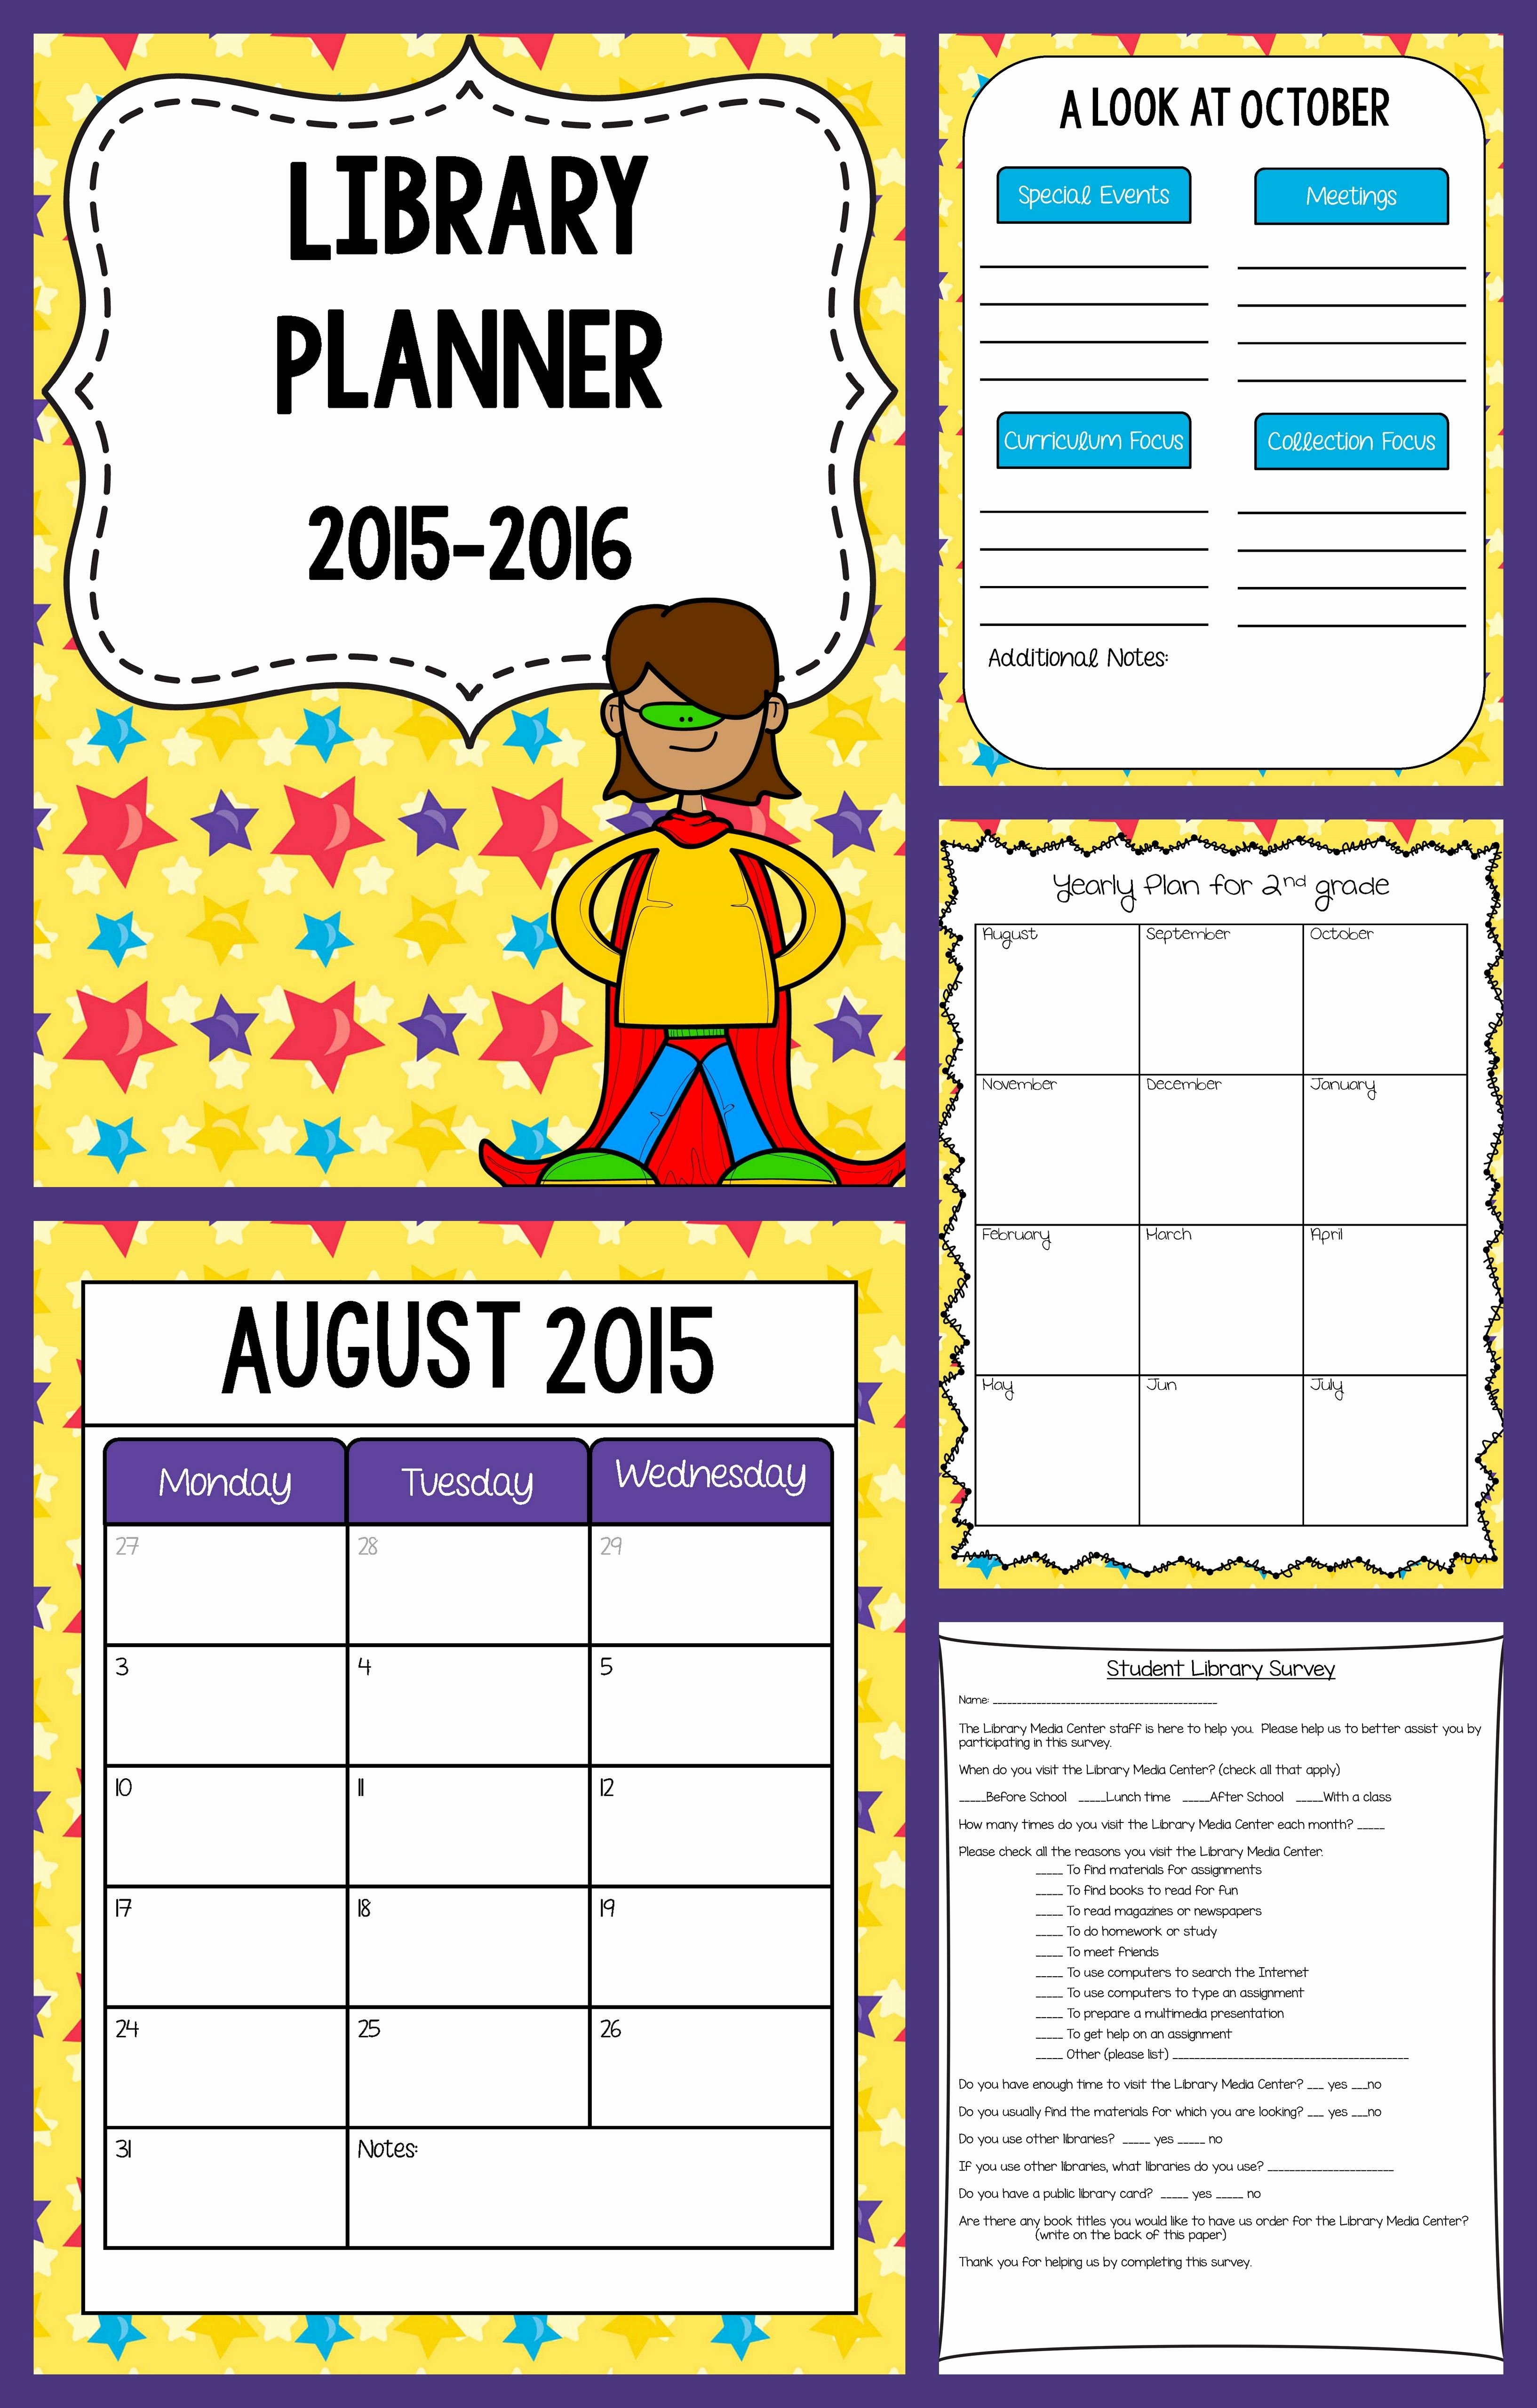 Library Lesson Plan Template Lovely School Library Planner Superhero theme